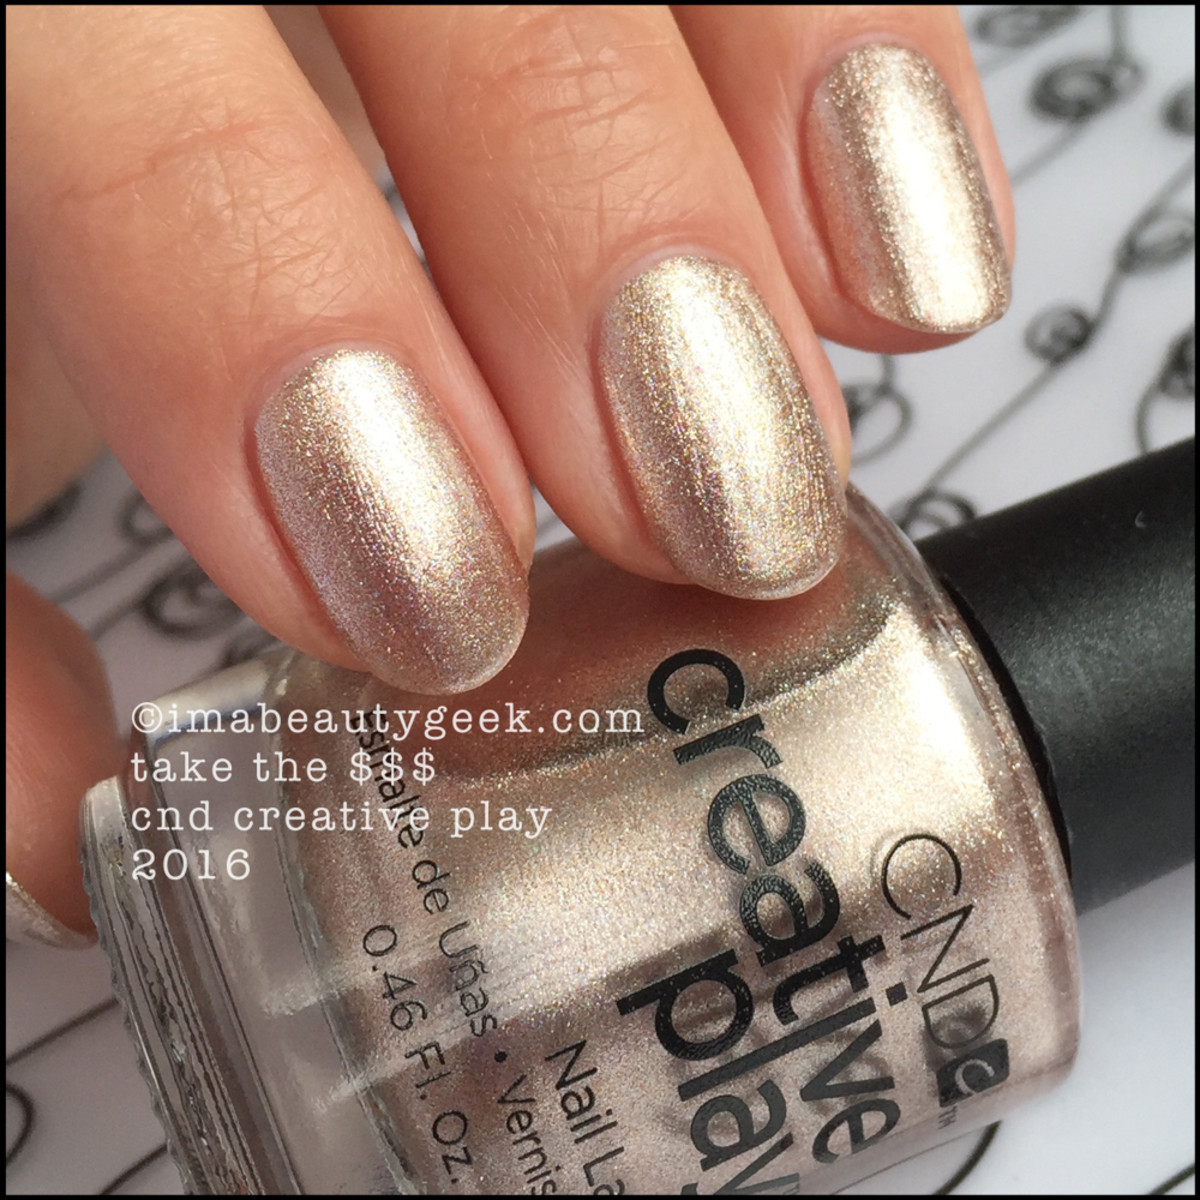 CND Creative Play Take the $$$_Creative Play Nail Polish Swatches